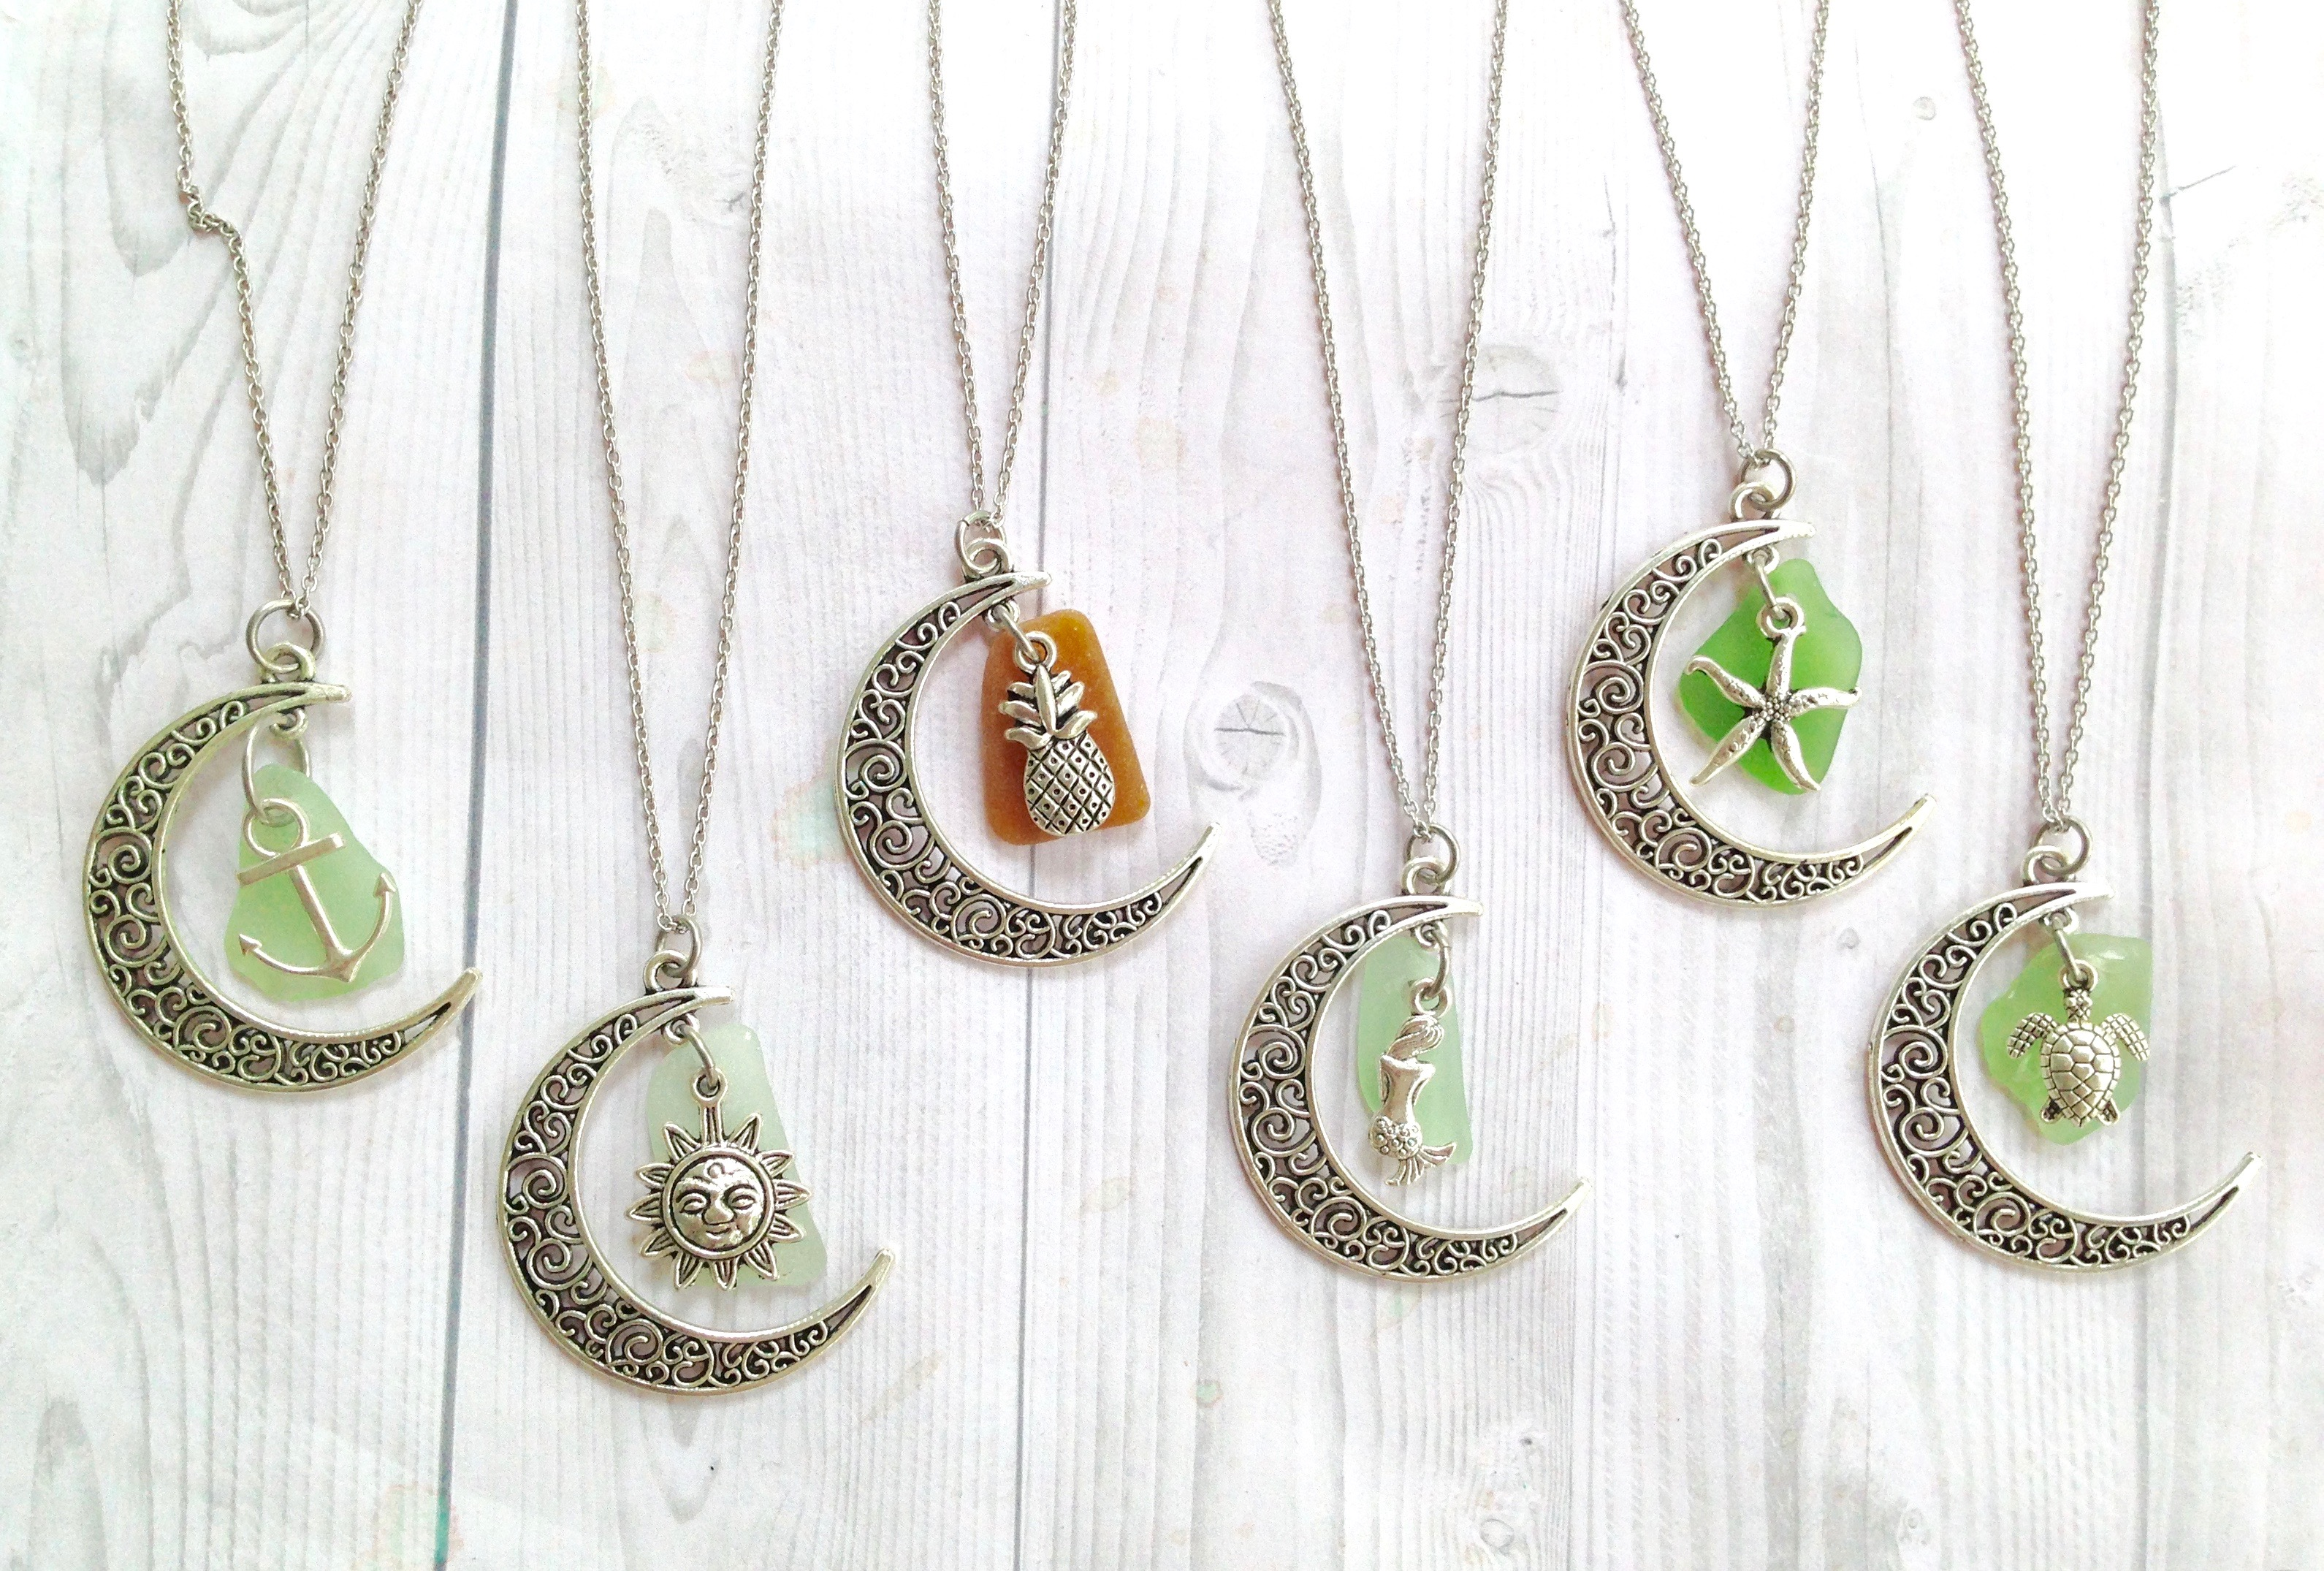 Crescent Moon Sea Glass Necklaces